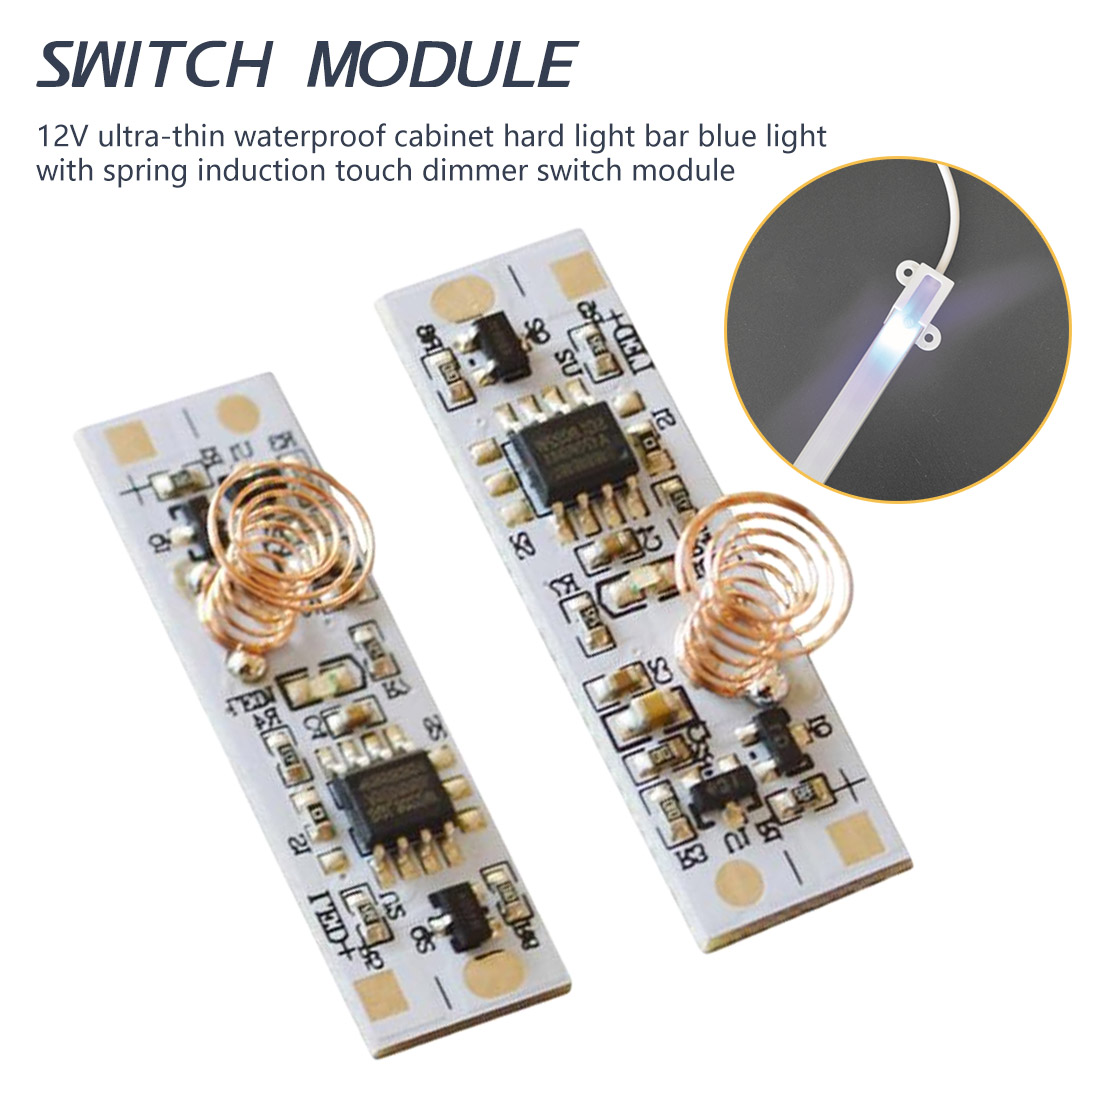 9-24V 30W 3A For Smart Home LED Light Strip DC 12V Capacitive Touch Sensor Switch Coil Spring Switch LED Dimmer Control Switch